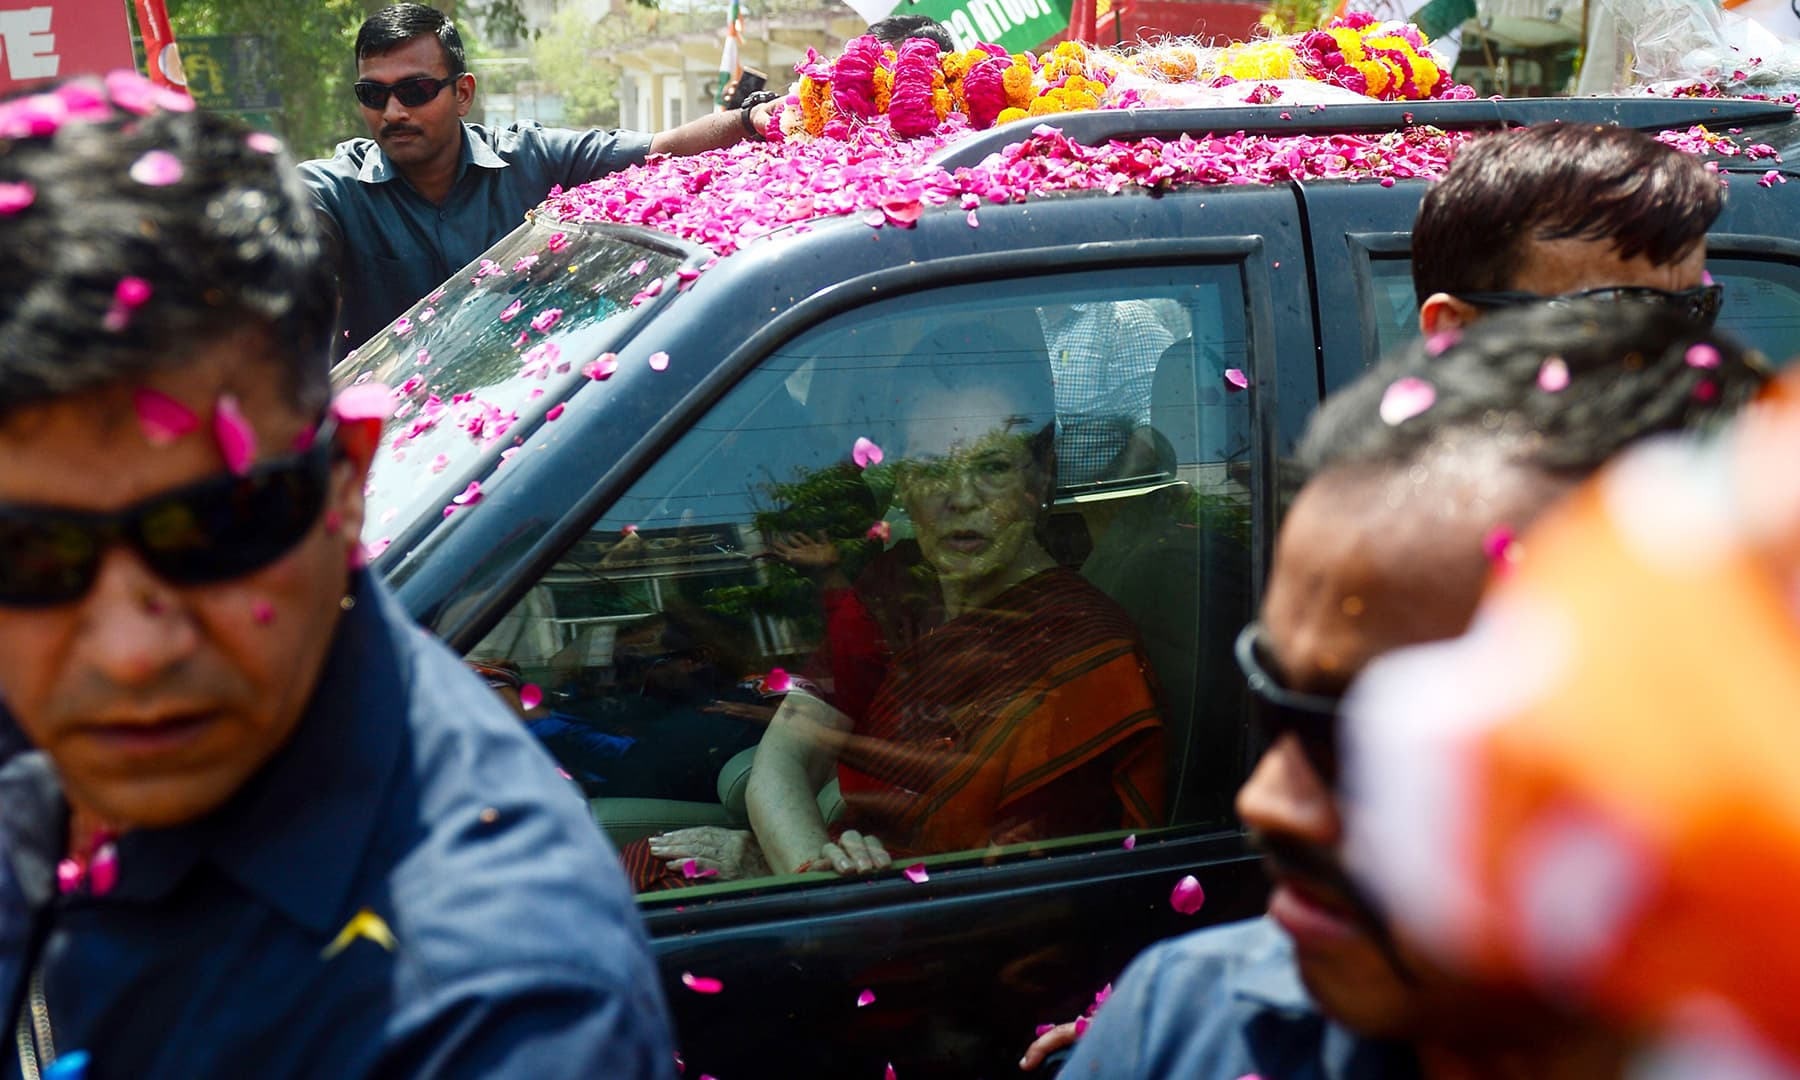 Indian Congress party senior leader Sonia Gandhi arrives in a car before filing her nomination papers for the forthcoming general election at a district court in Rae Bareilly on April 11, 2019. — AFP